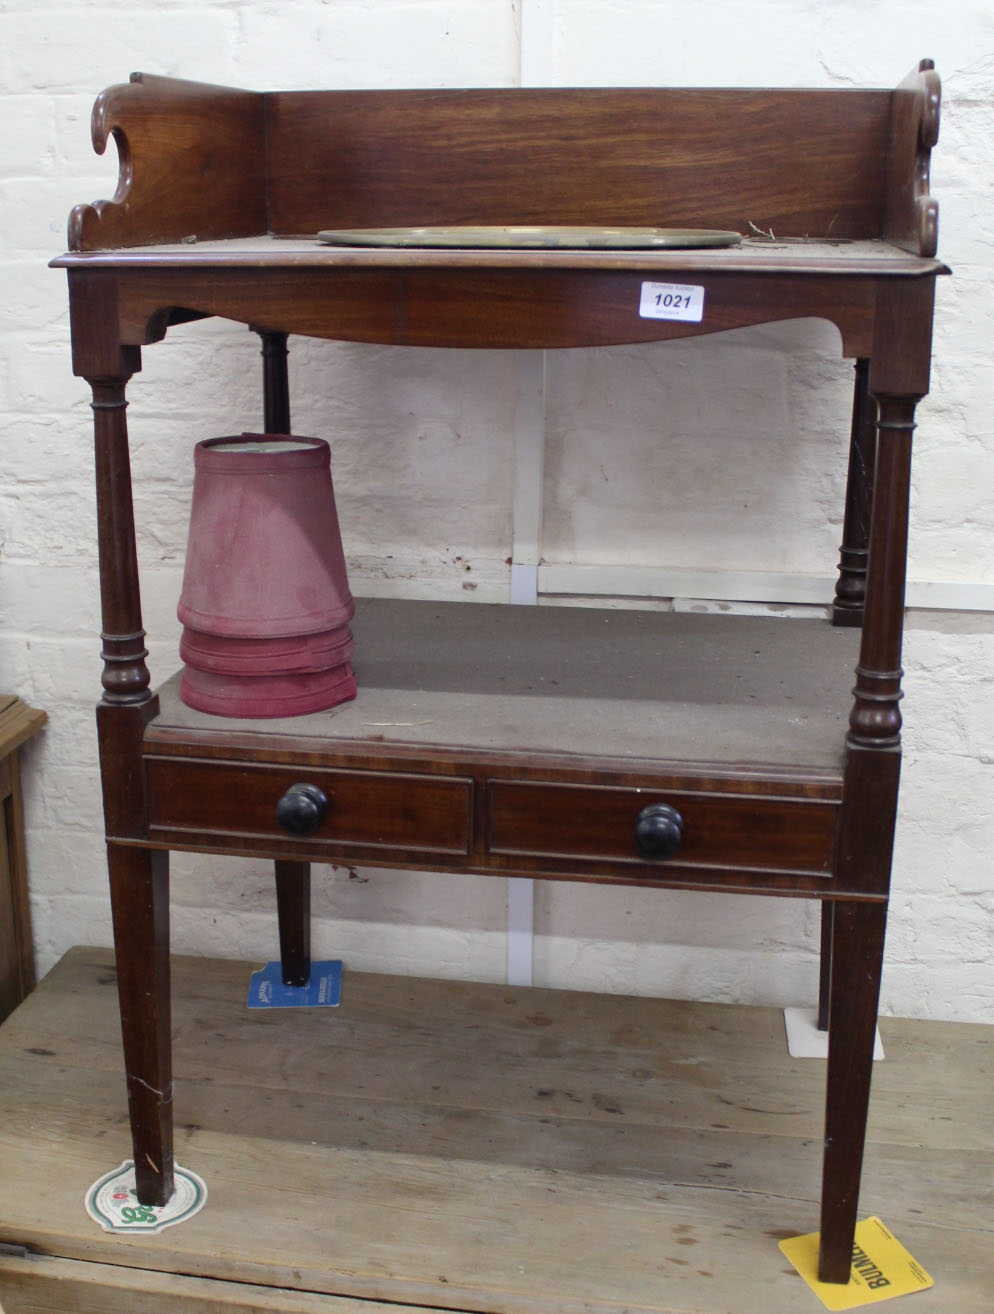 Lot 1023 - A 19th Century mahogany washstand with galleried upstand and single drawer and a Victorian pine